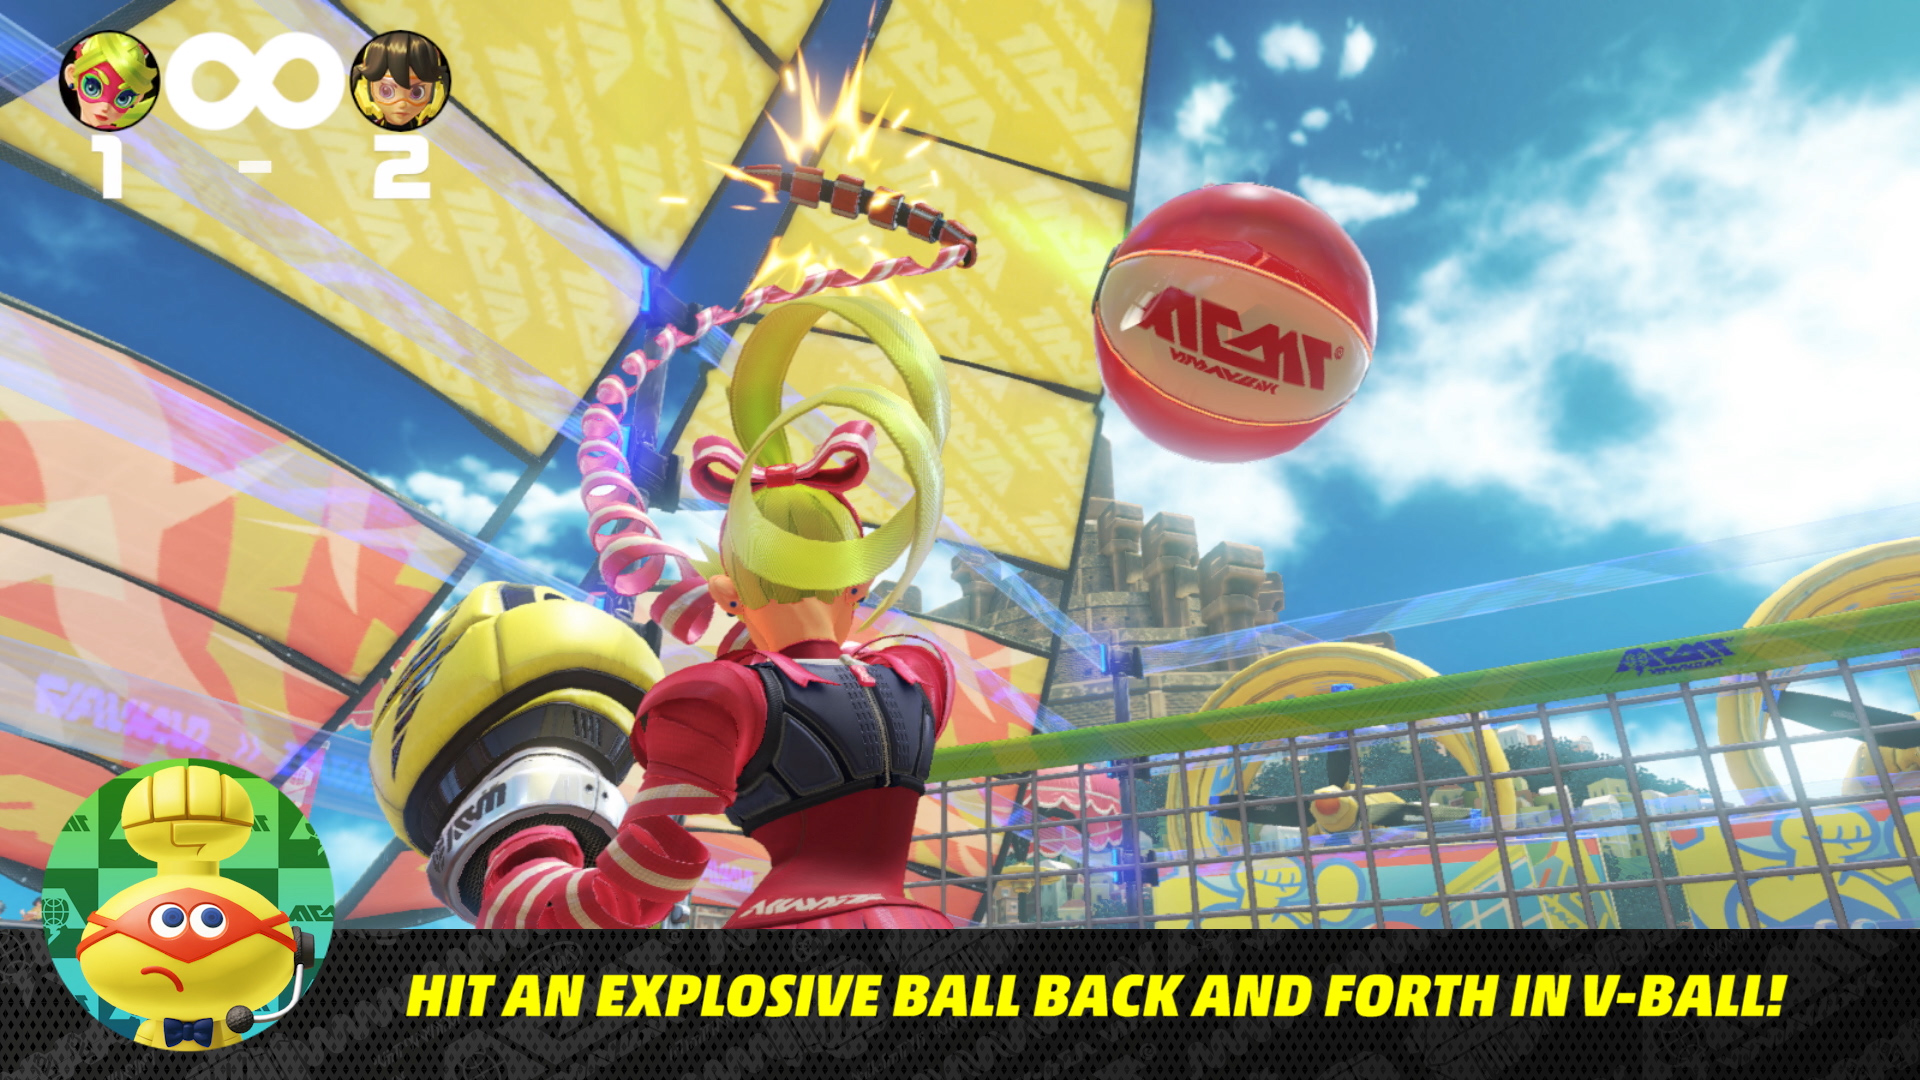 Nintendo Direct 5/17/17 - Arms V-Ball